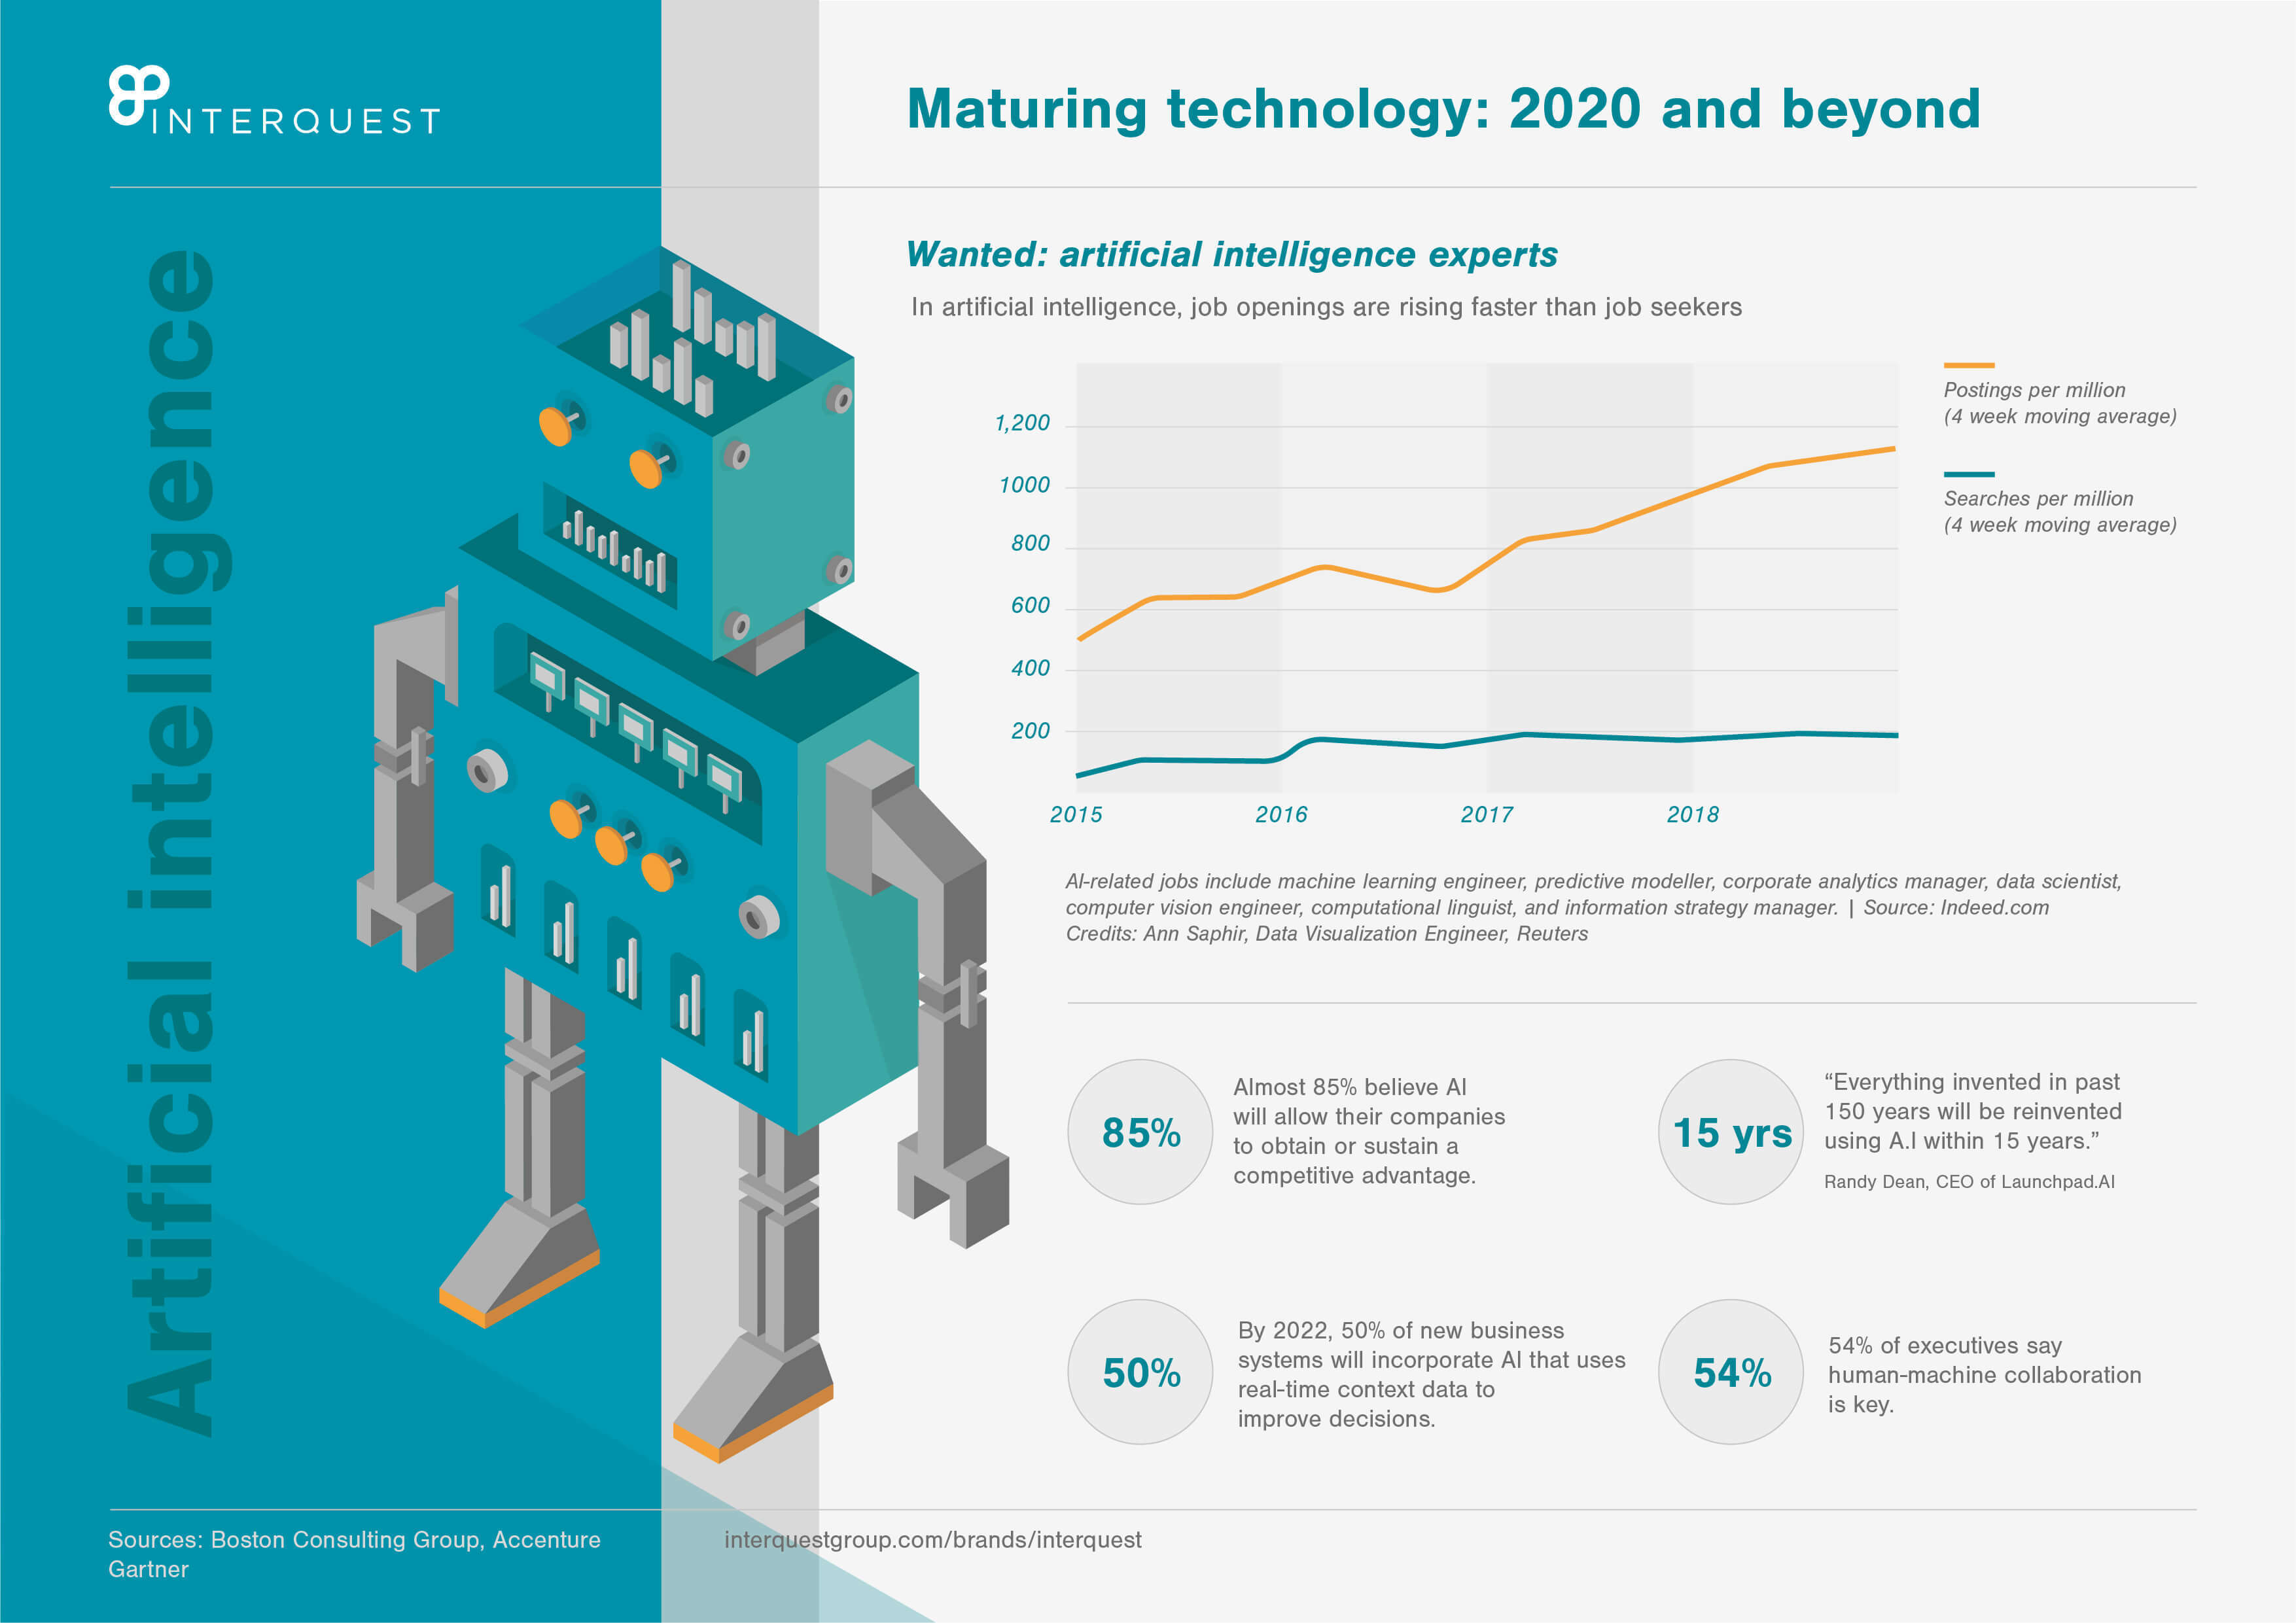 Maturing artificial intelligence technology: 2020 and beyond page 2